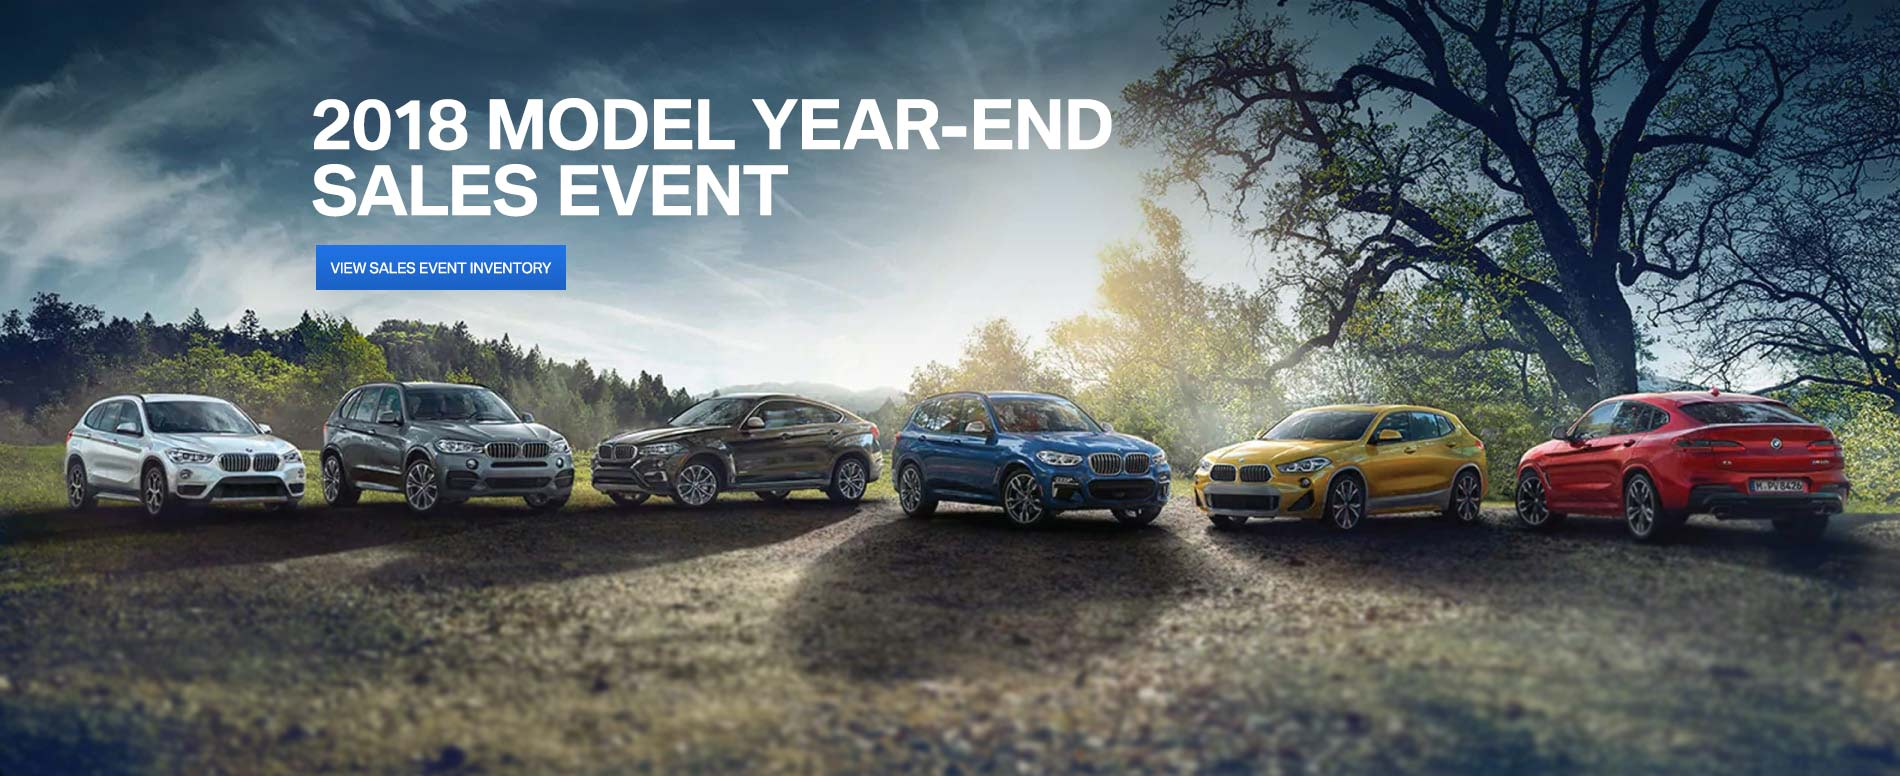 2018 Model Year-End Sales Event